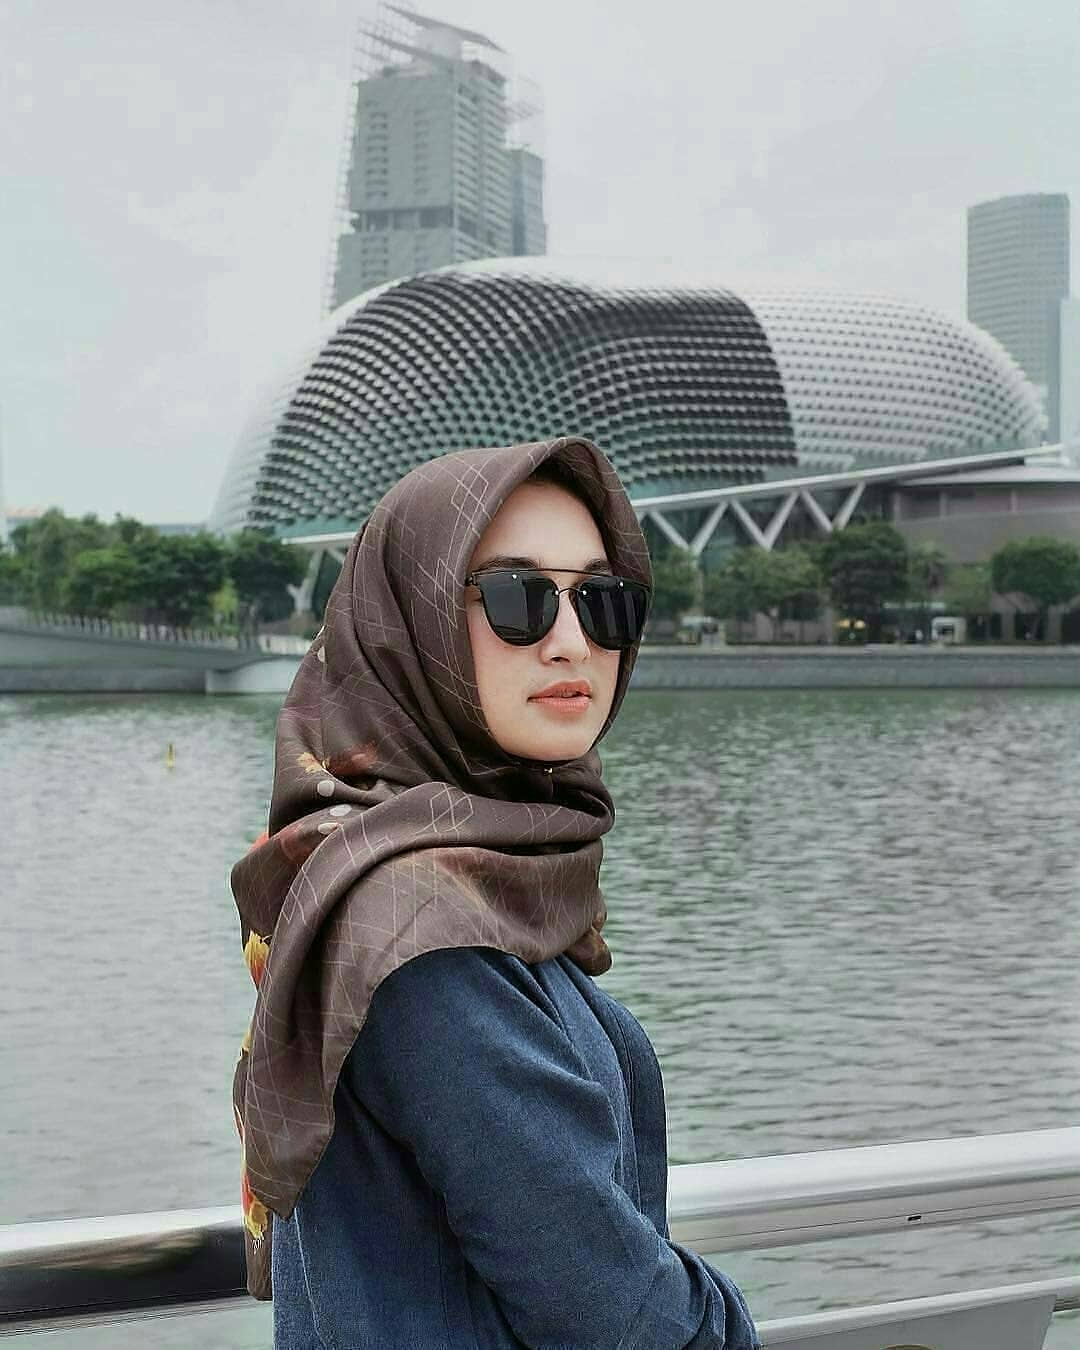 15+ Top 2018 Photos of The Top Hijab Models that are Trending